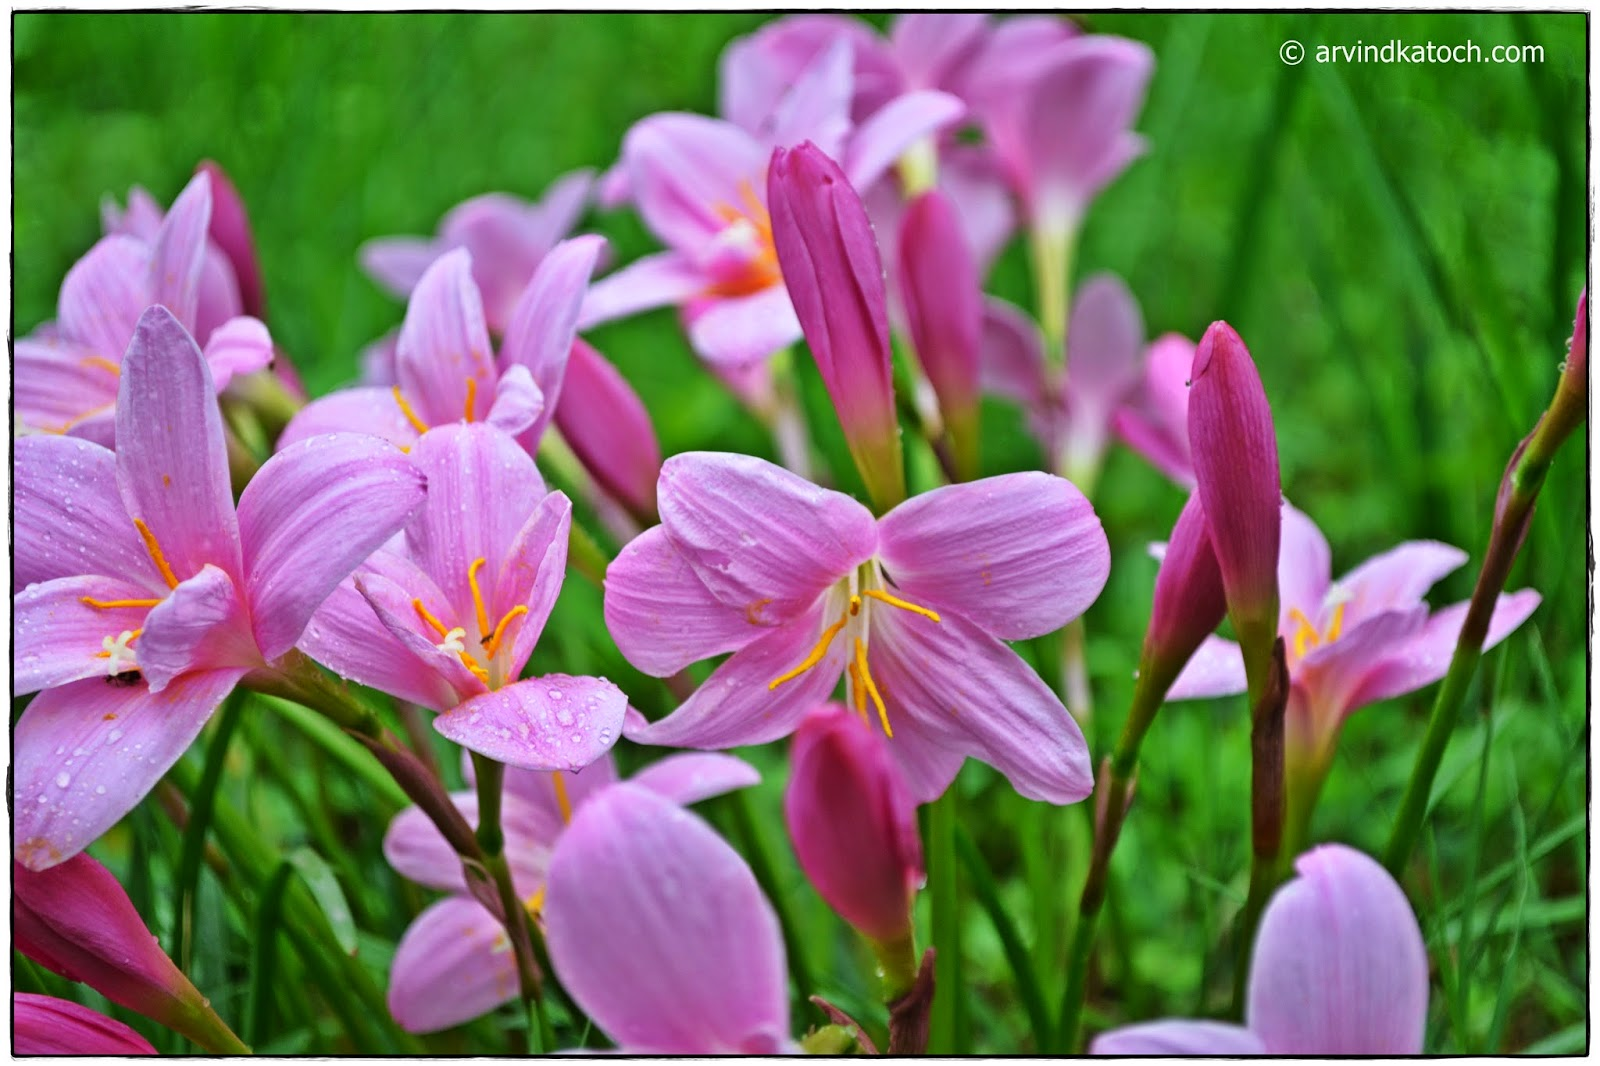 Grass Flowers, Flowers, Pink Flowers